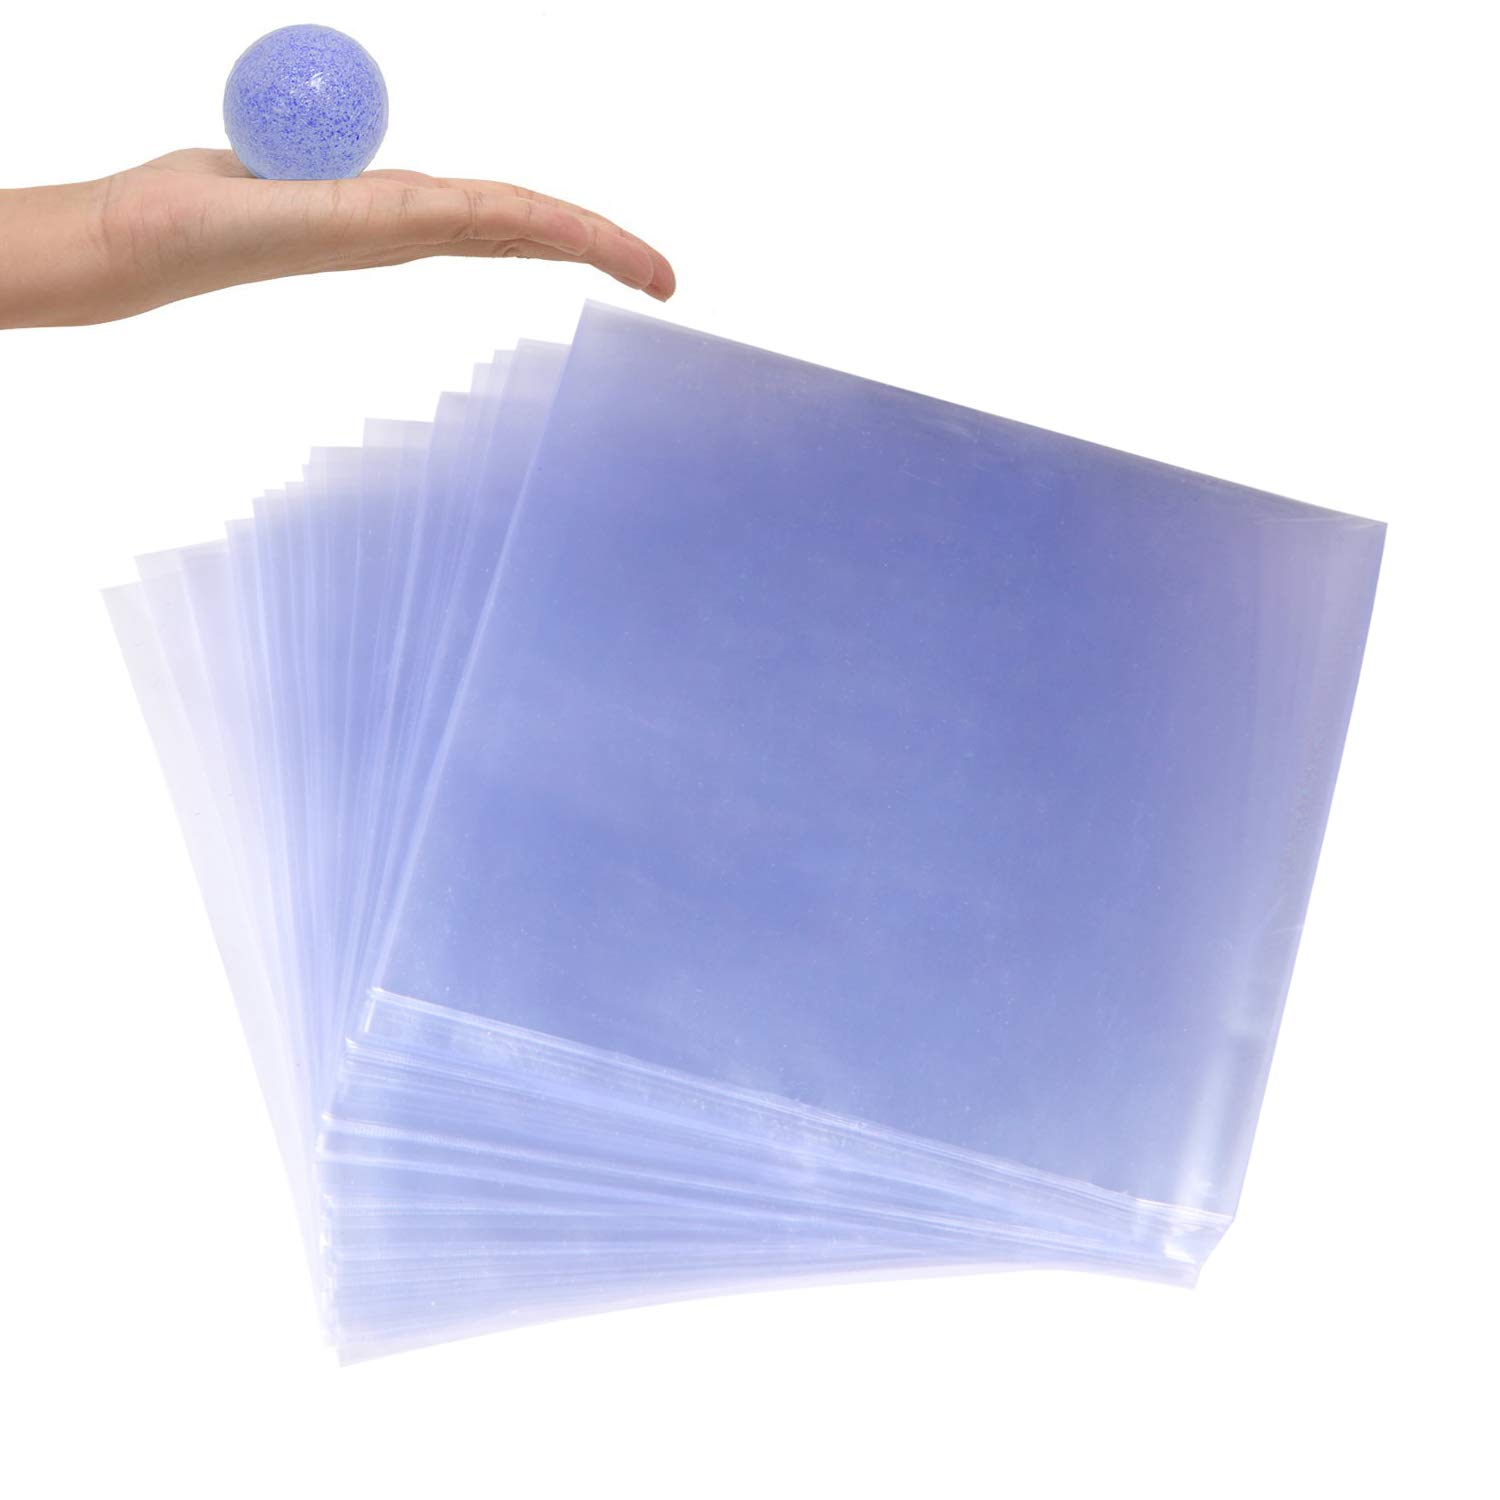 HEALLILY Shrink Wrap Bags Clear Heat Shrink Film Wrap Bags Great for Soaps Bath Bombs Tins Crafts Small Gifts 100PCS Size 16x30cm